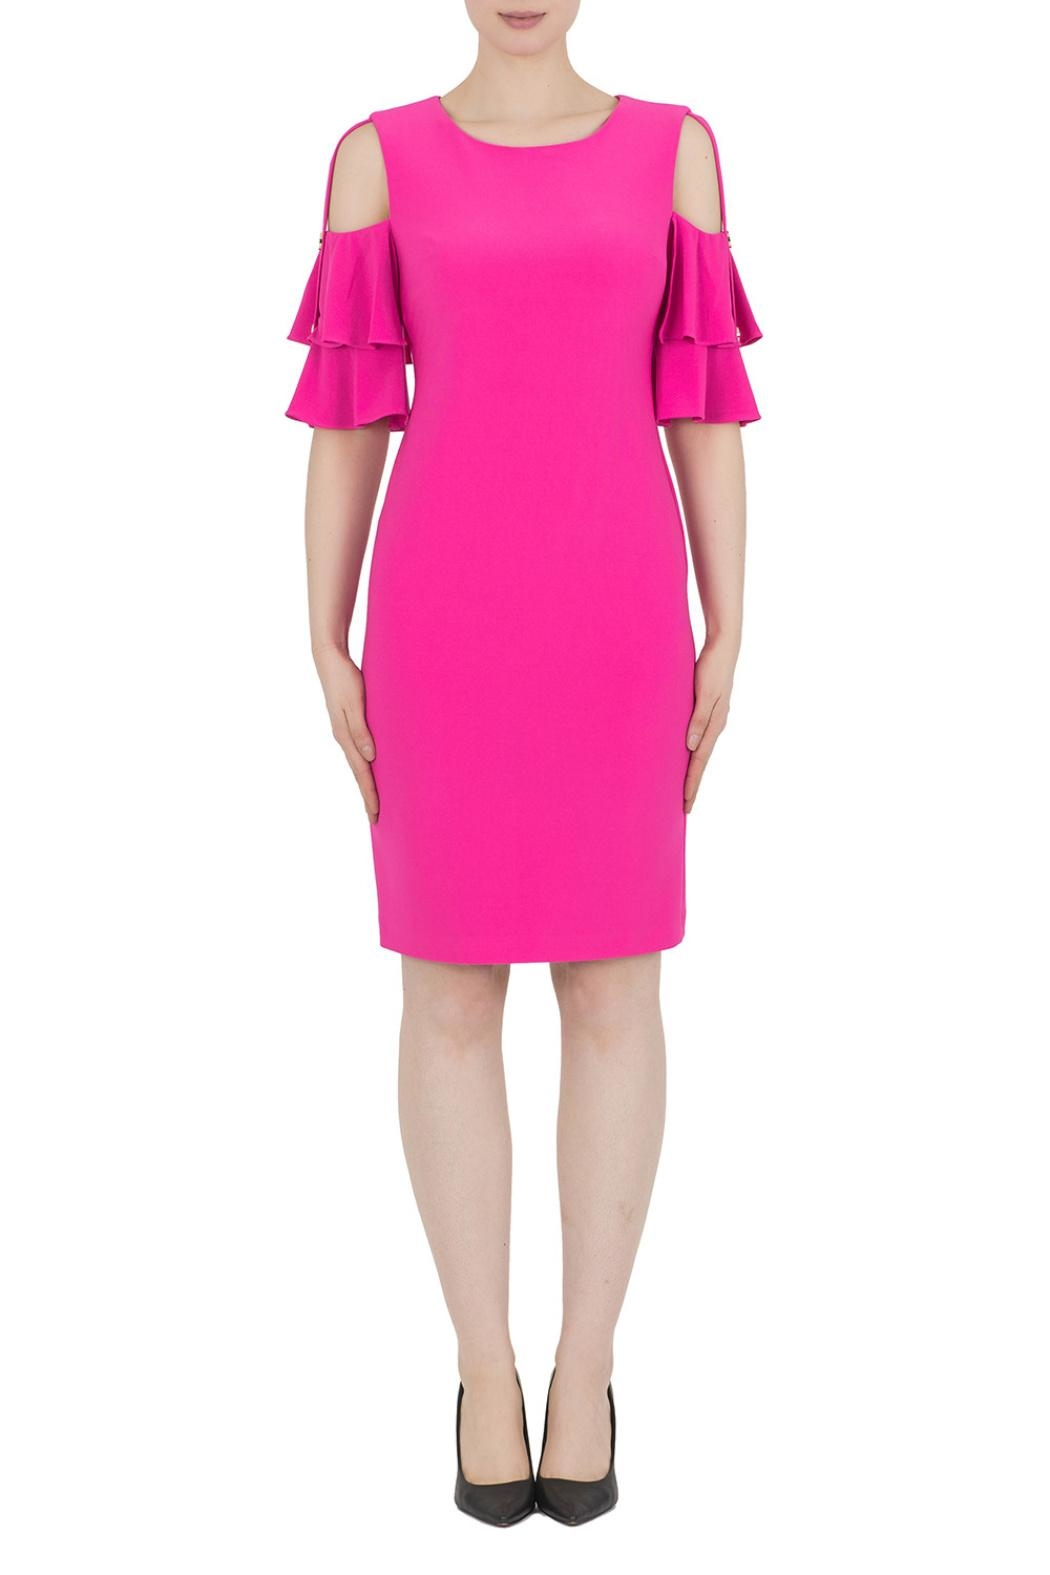 Joseph Ribkoff Pink Dress - Main Image